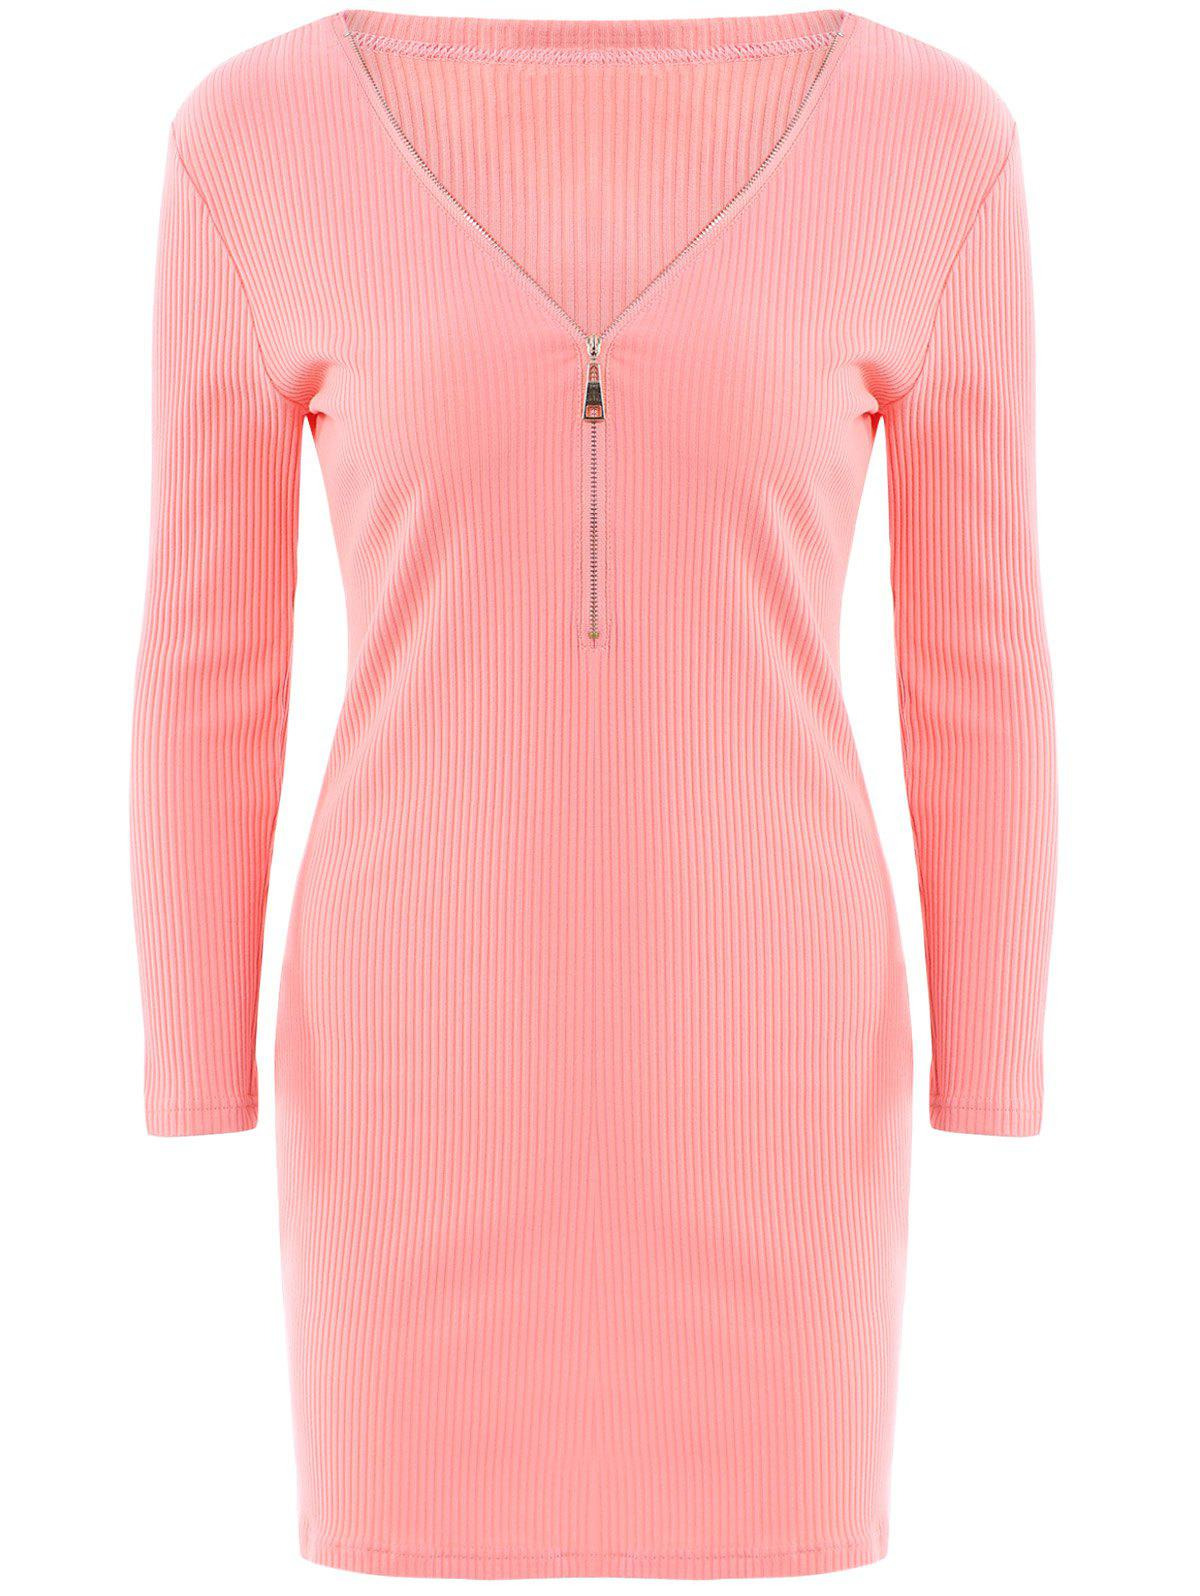 Alluring Women's V-Neck Candy Color Long Sleeve Dress - WATER RED S